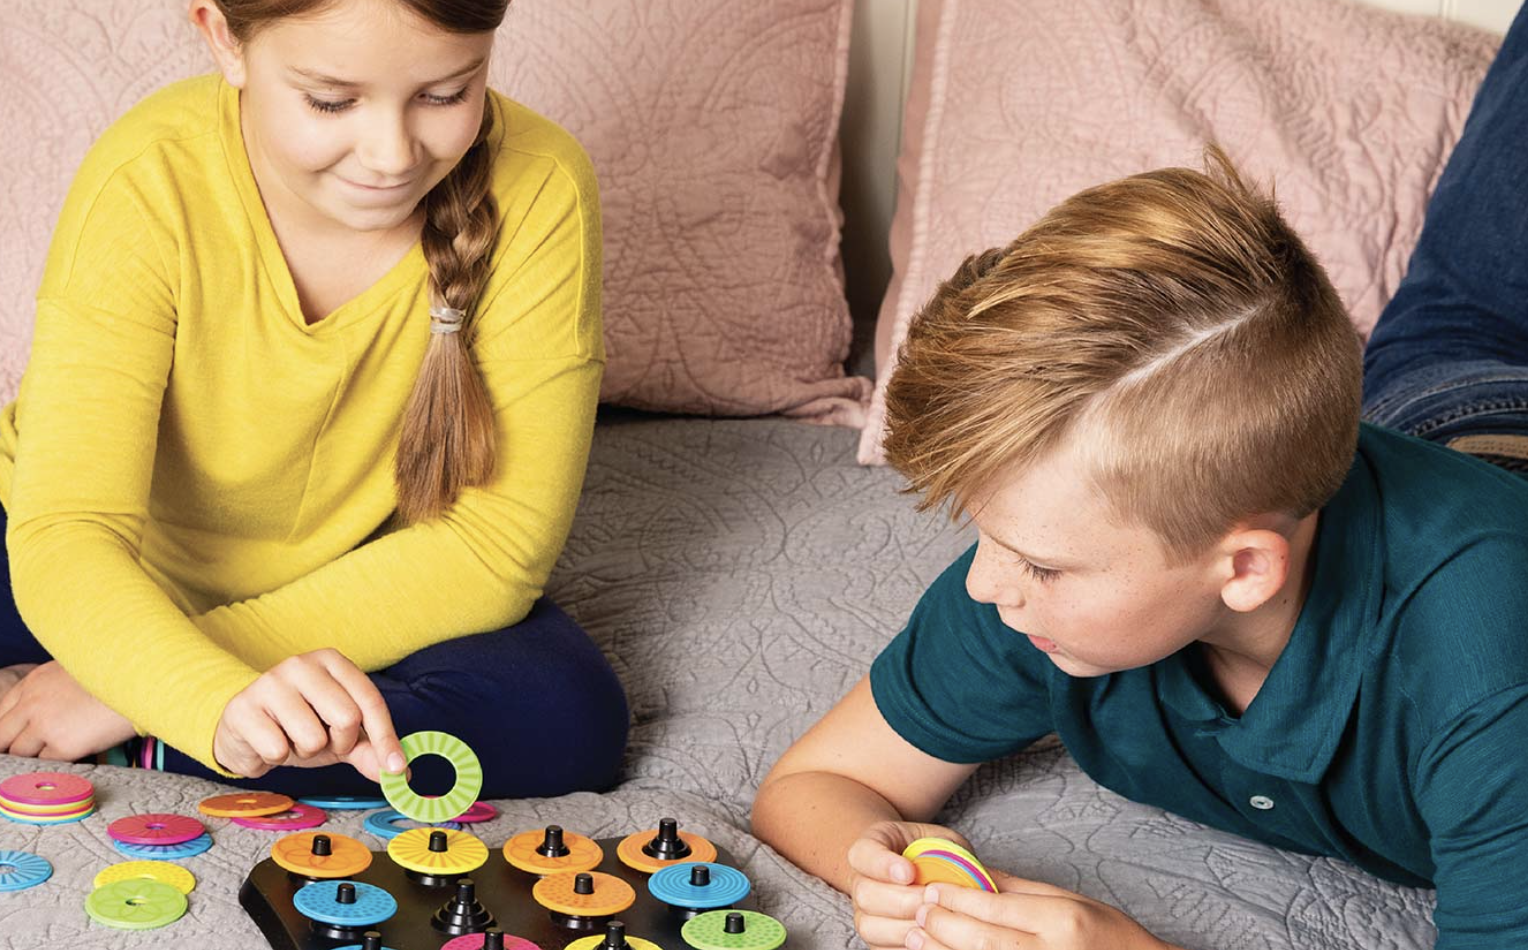 41 of the Best Online Toy Stores (Mega List) - Home Stratosphere